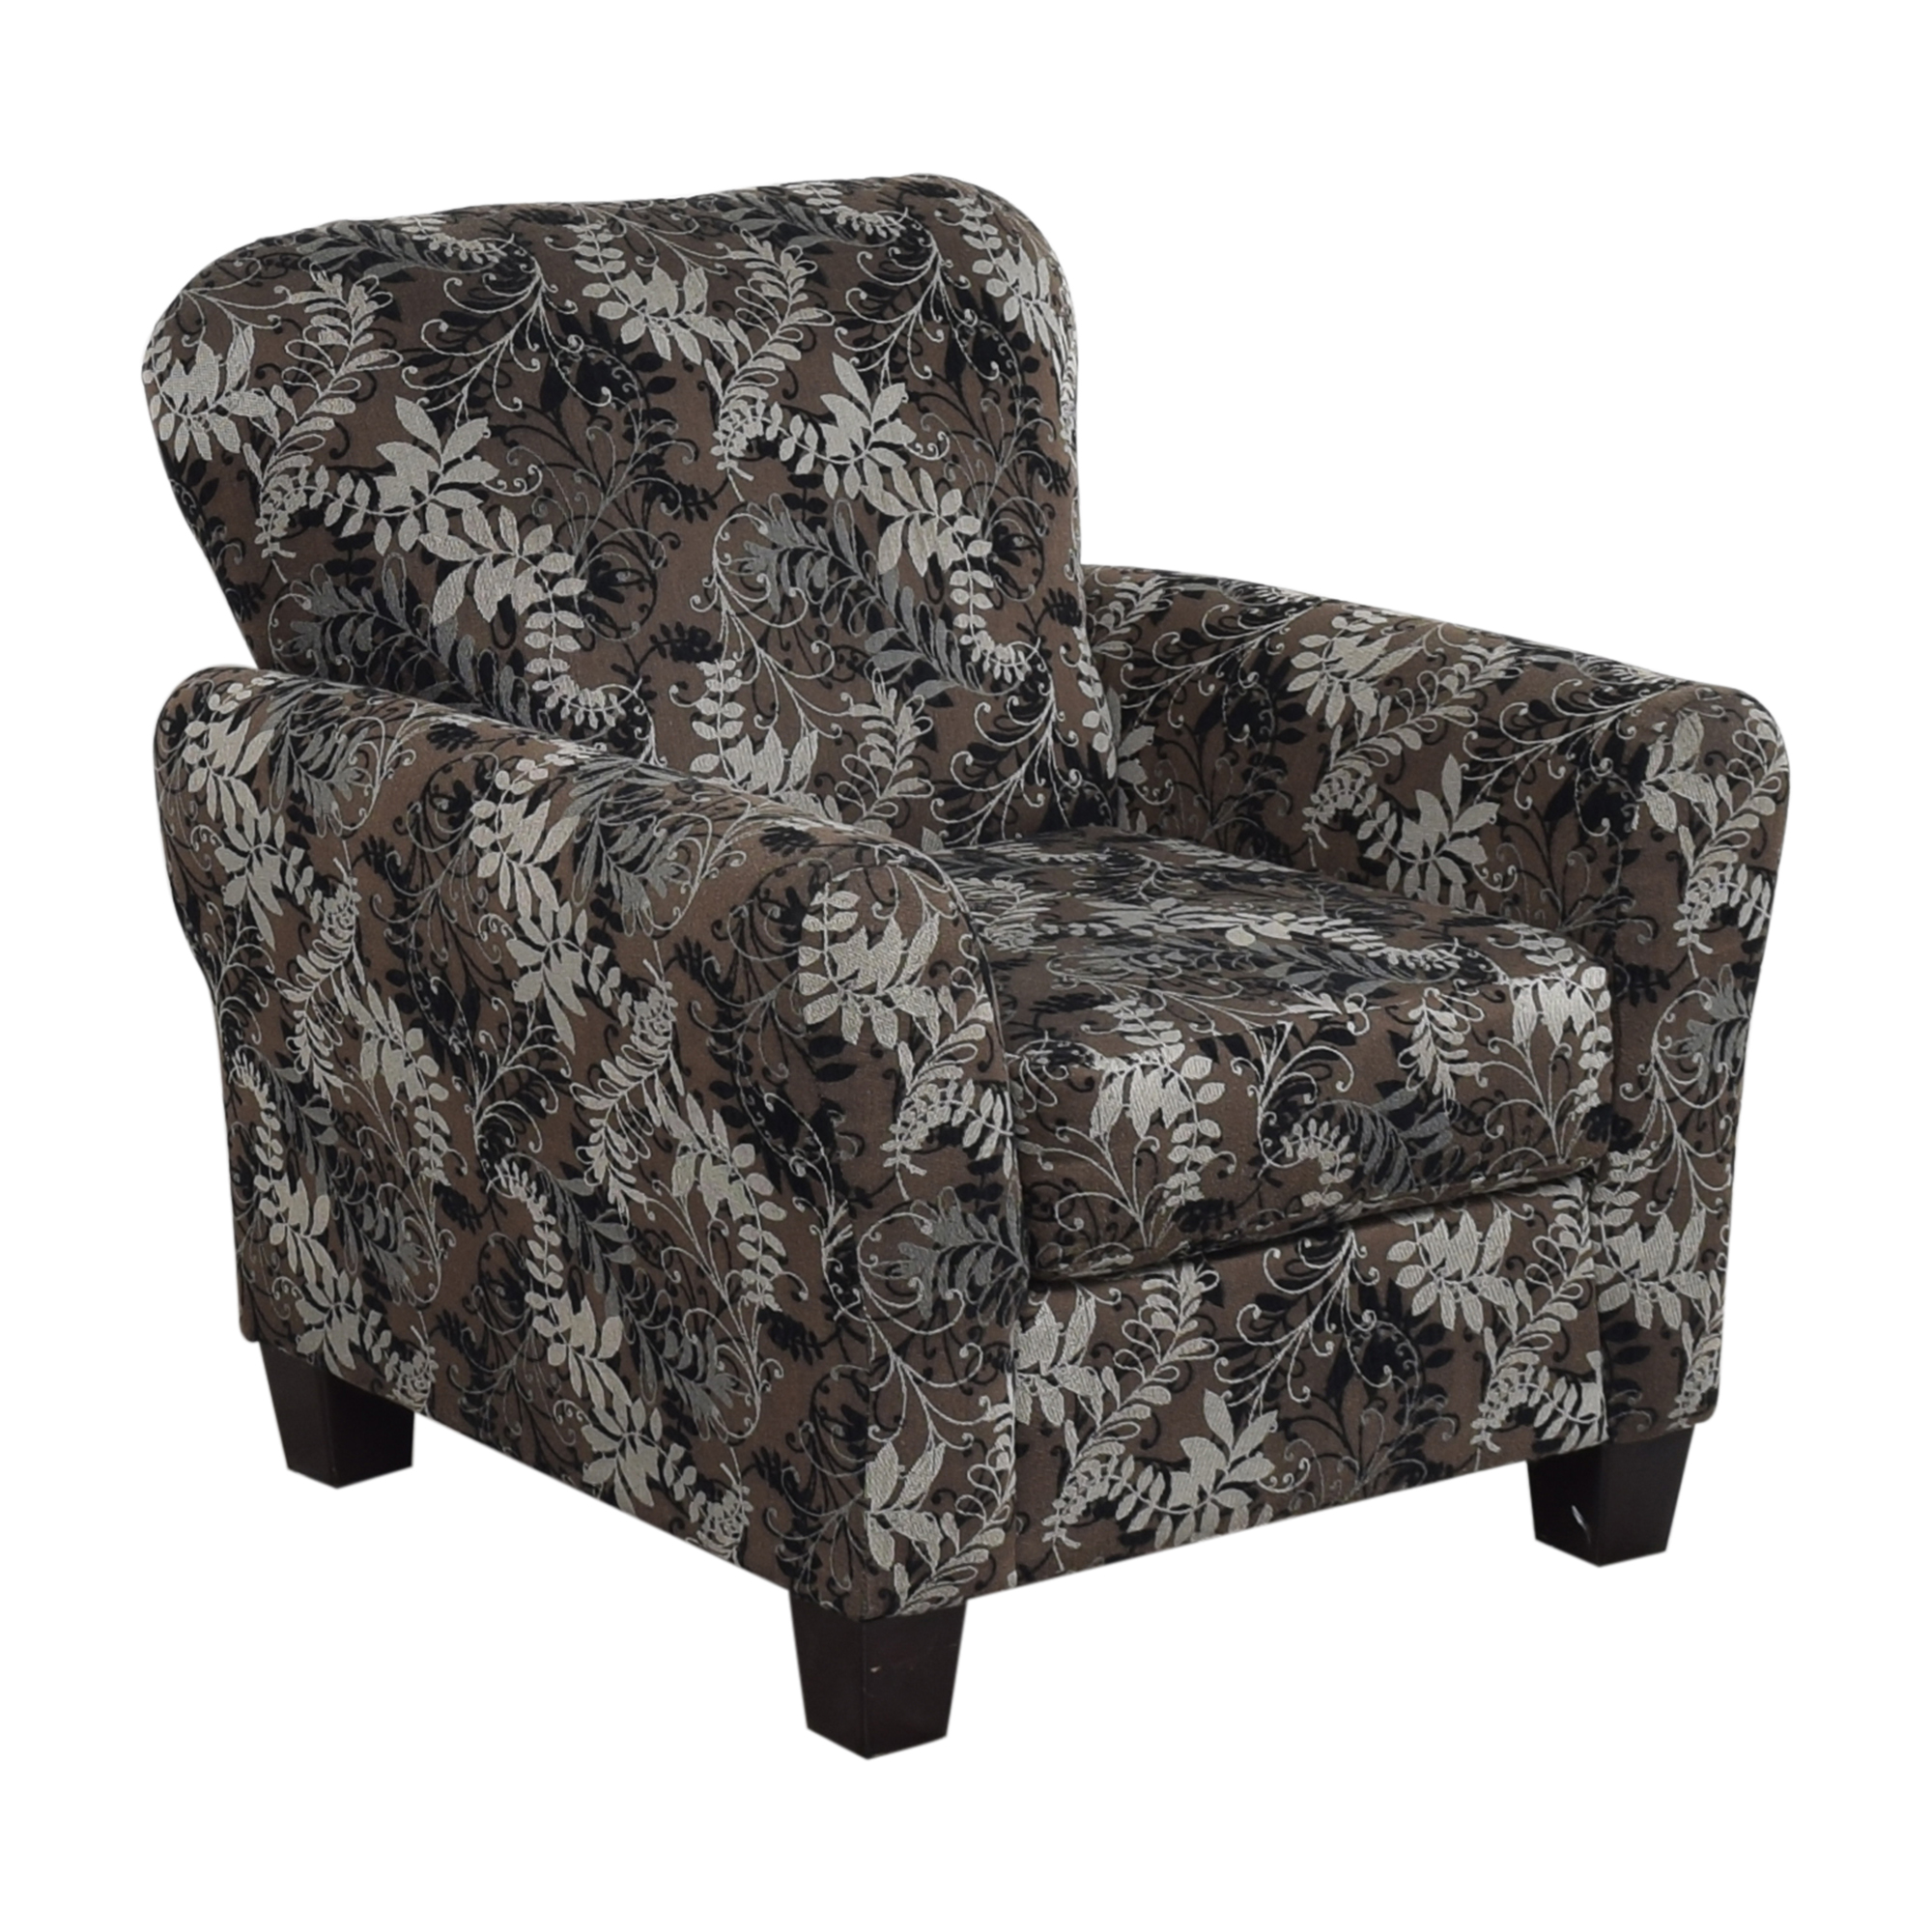 shop Raymour & Flanigan Hartley Accent Chair Raymour & Flanigan Chairs